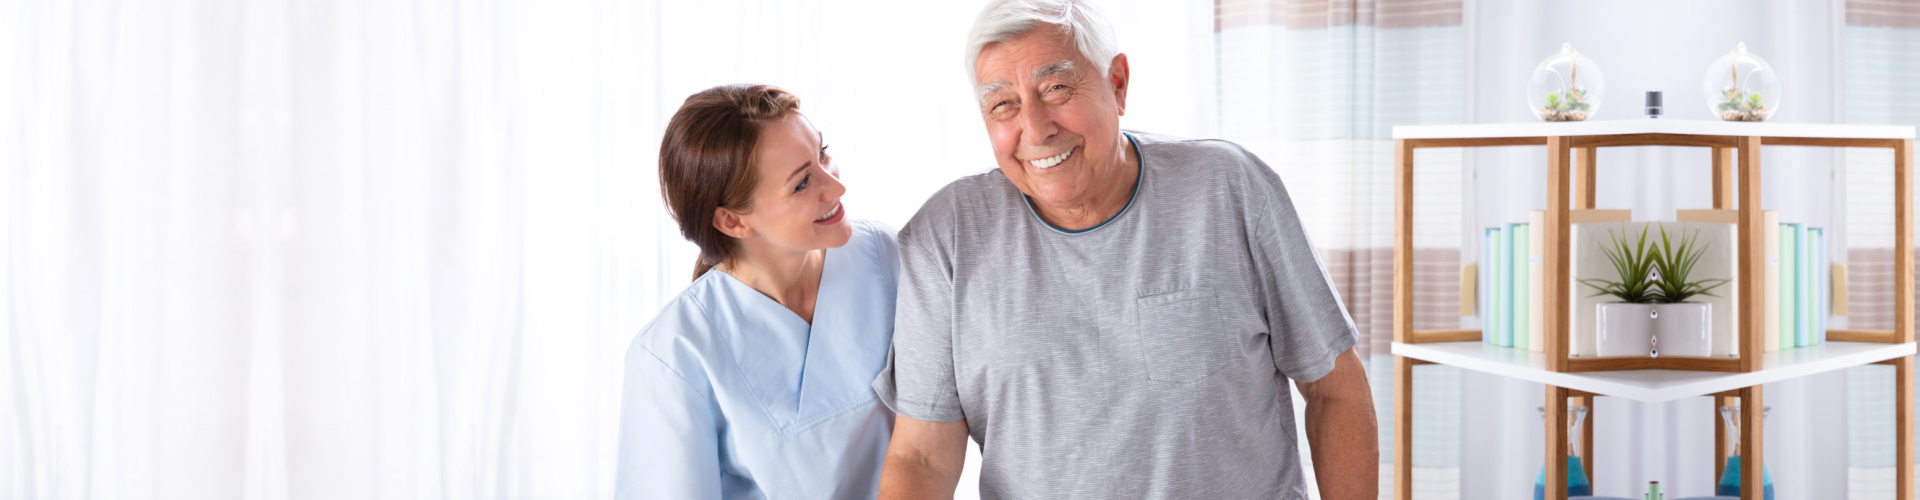 healthcare professional assisting senior man